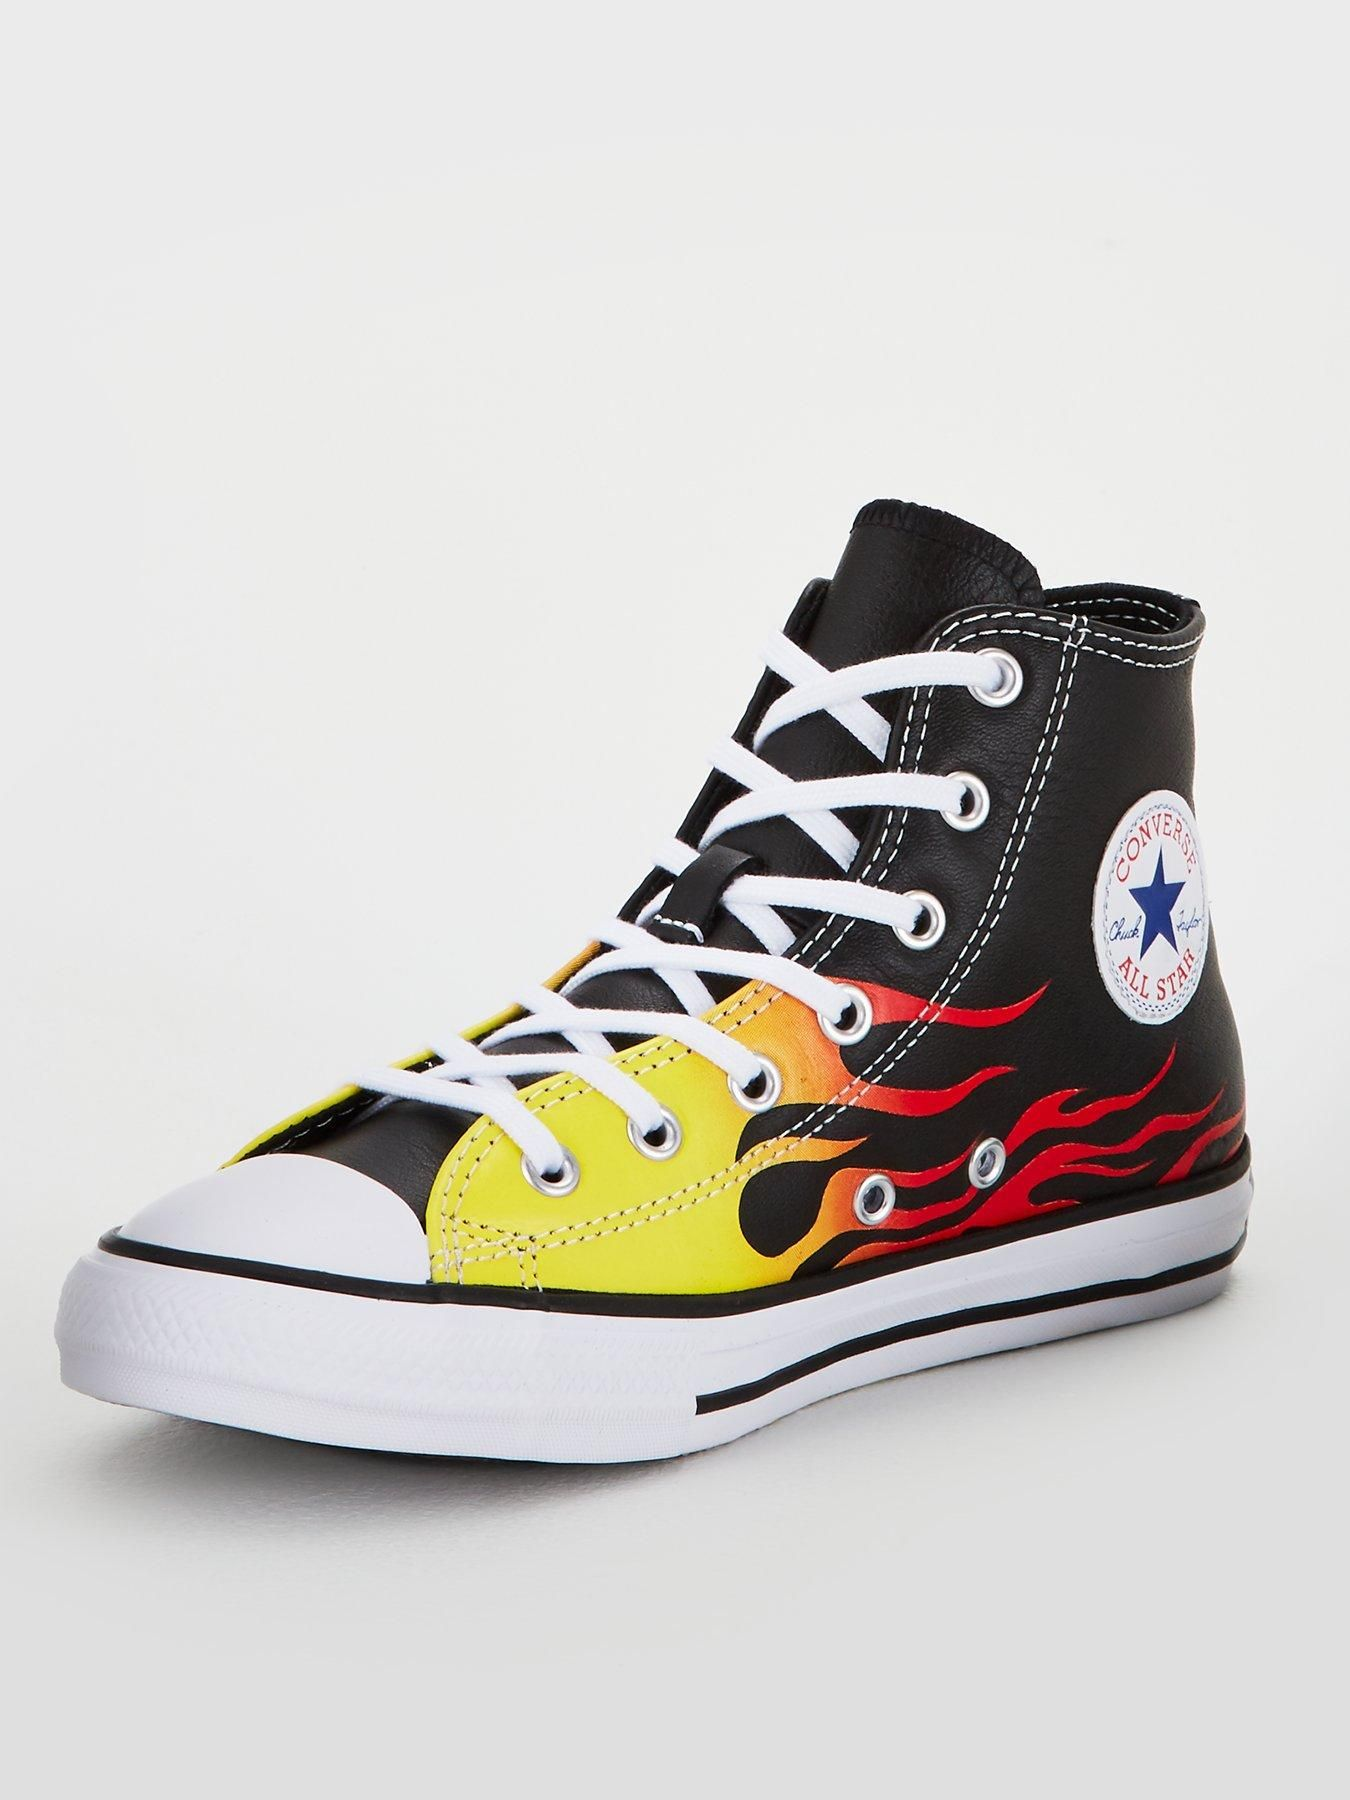 Converse Black Chuck 70 Neon Nights High Top Sneakers | Browns